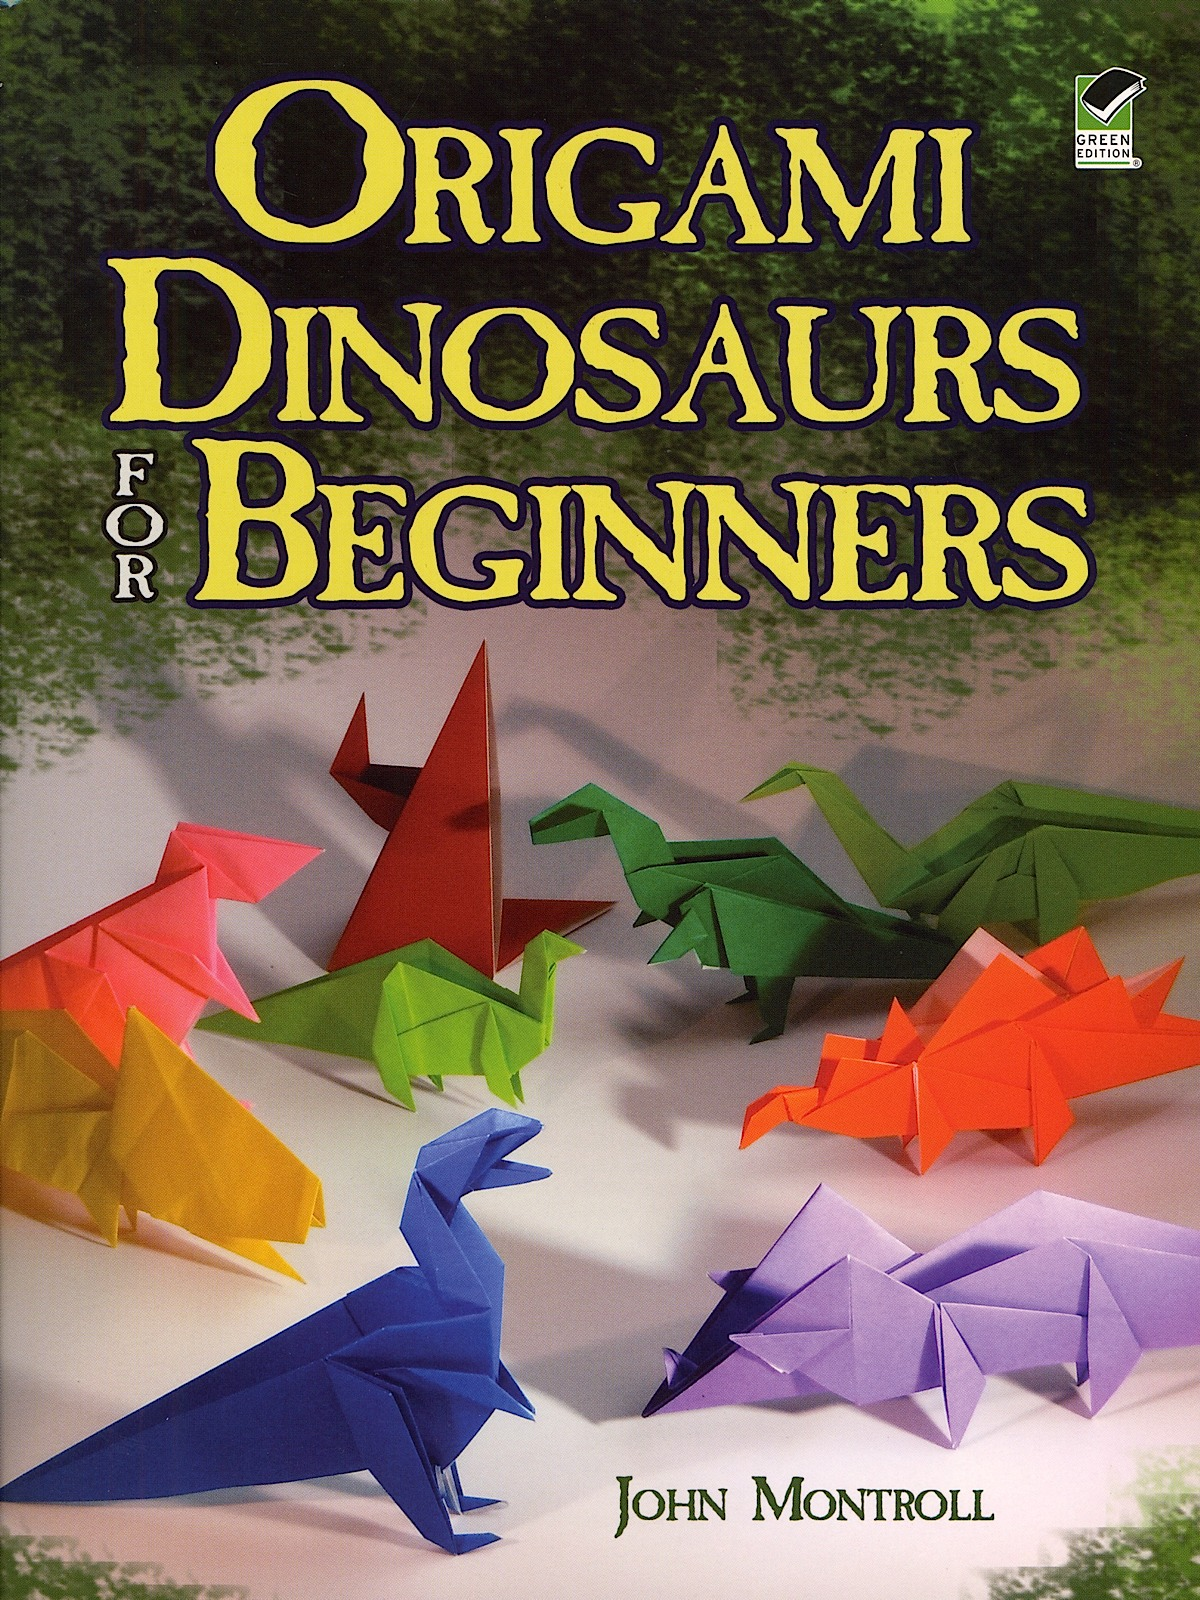 Origami Dinosaurs for Beginners | MisterArt.com - photo#4